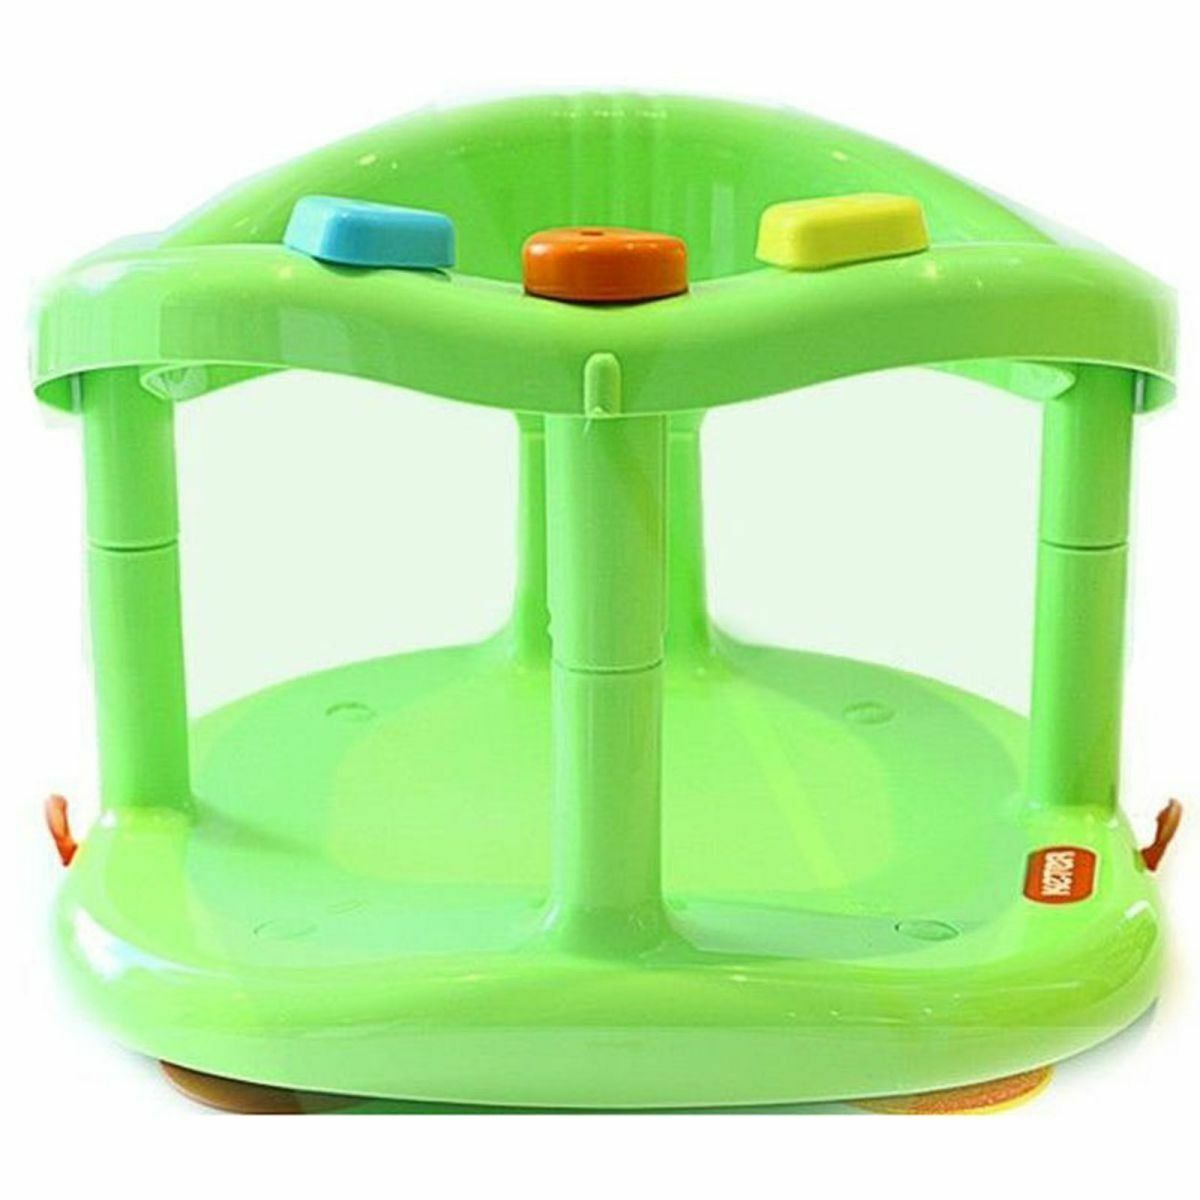 bath tub chair for baby modern wicker seats ebay safe ring safety anti slip seat keter infant child toddler